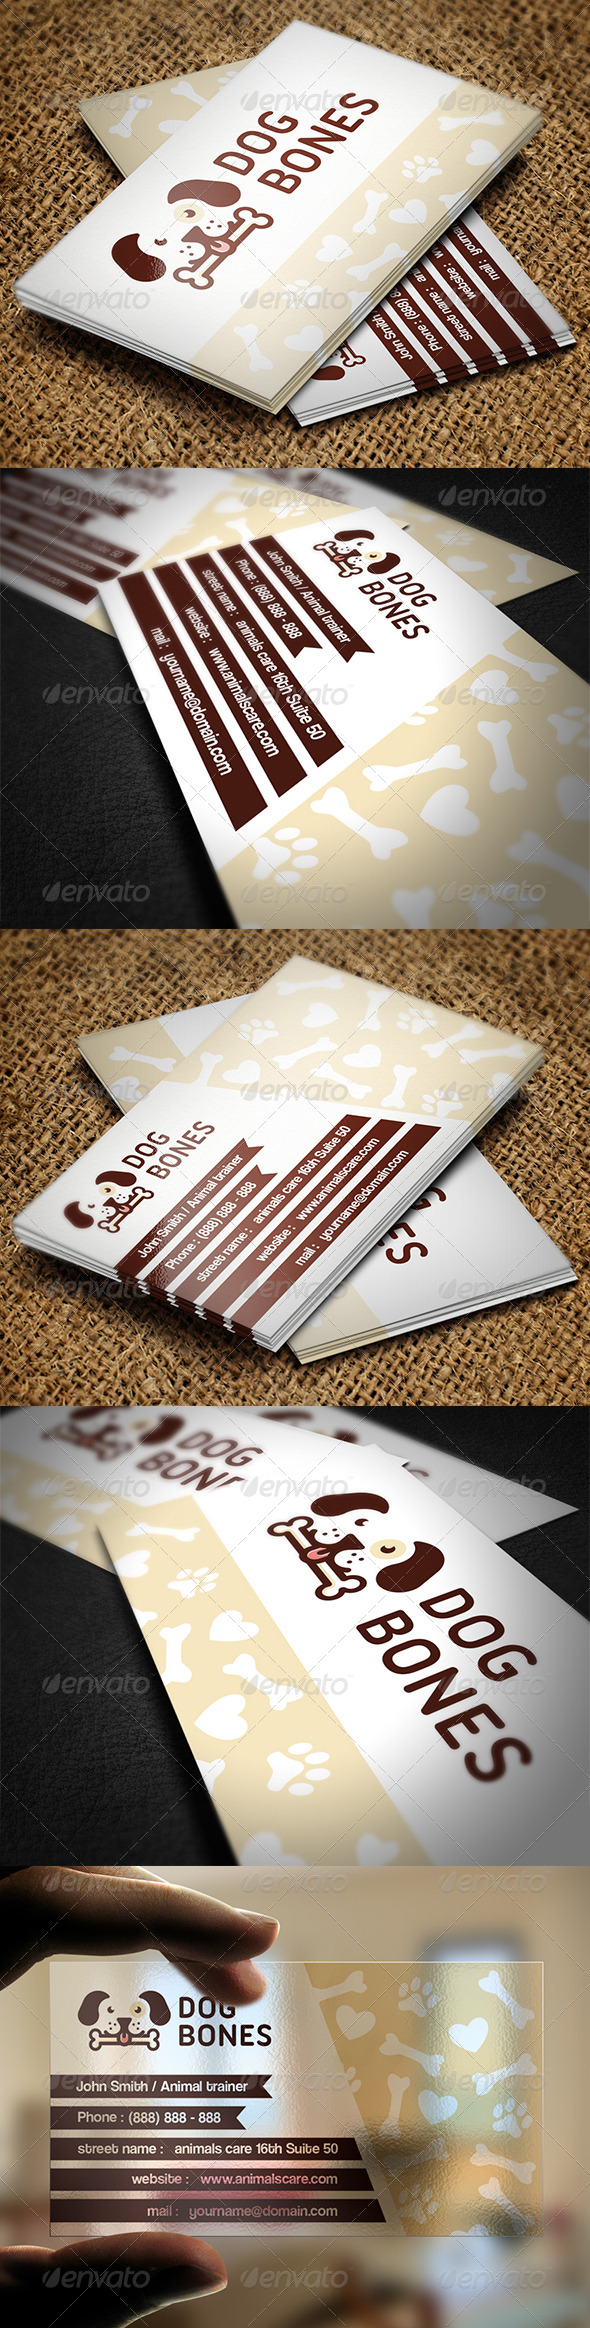 GraphicRiver Animal Care Business Card 7112843